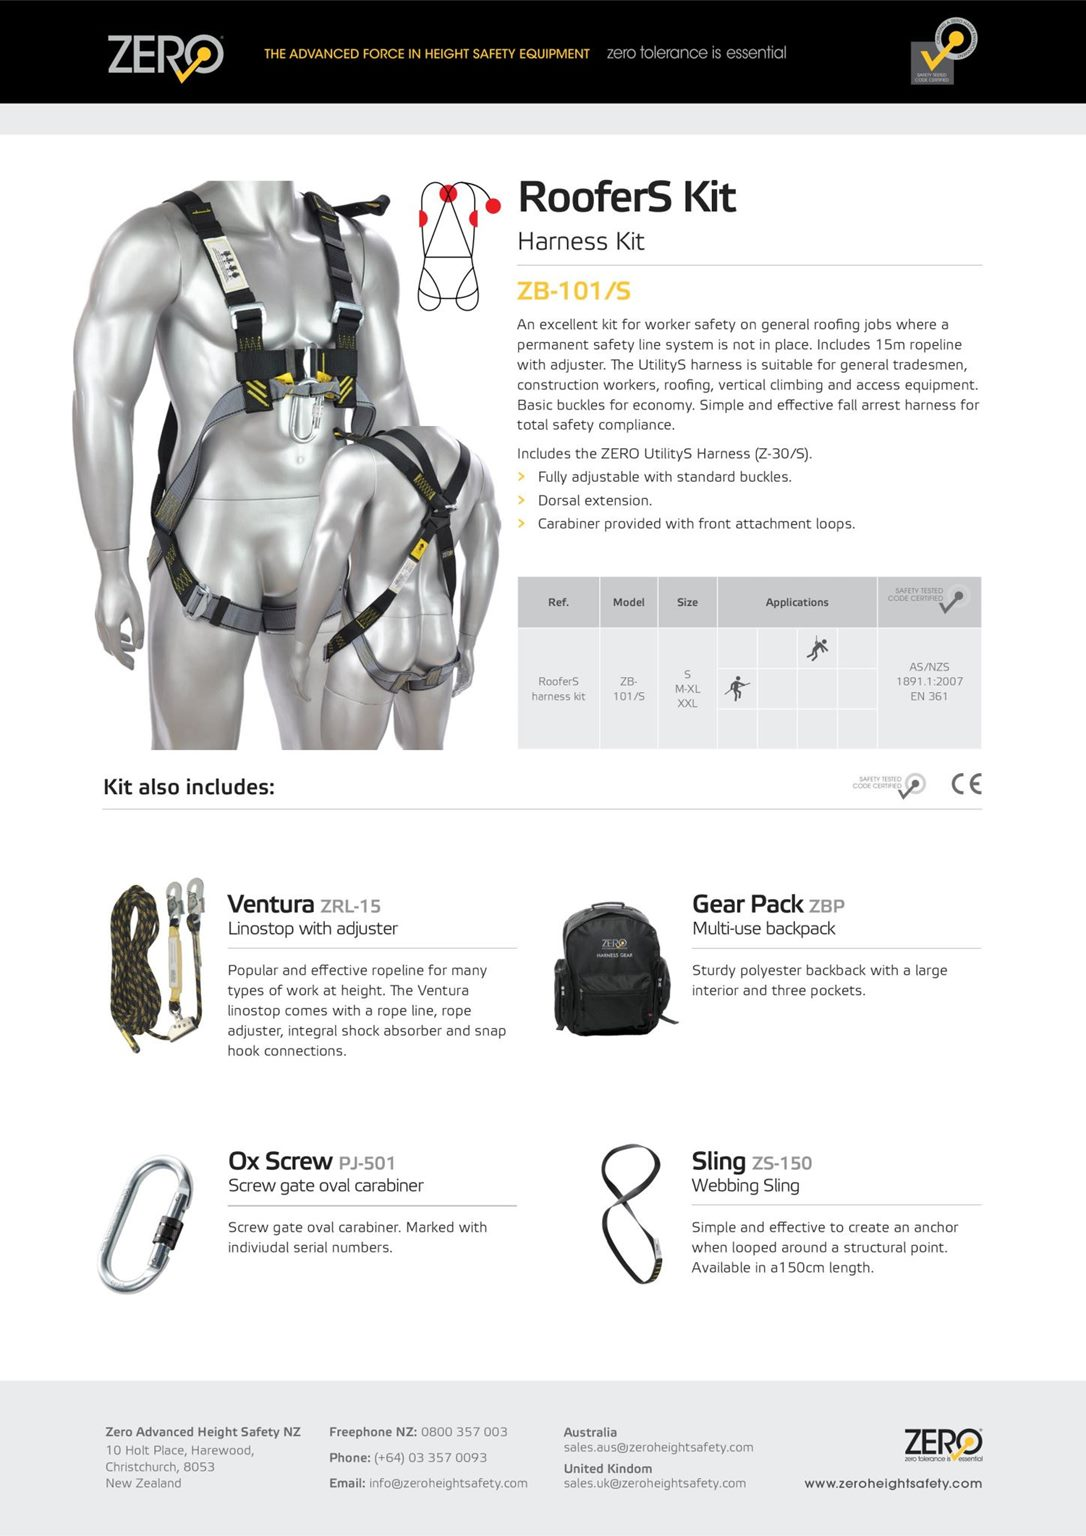 Zero Roofers Kit Harness Available With 15m 20m Or 30m Rope Roofing Click To Enlarge Photo